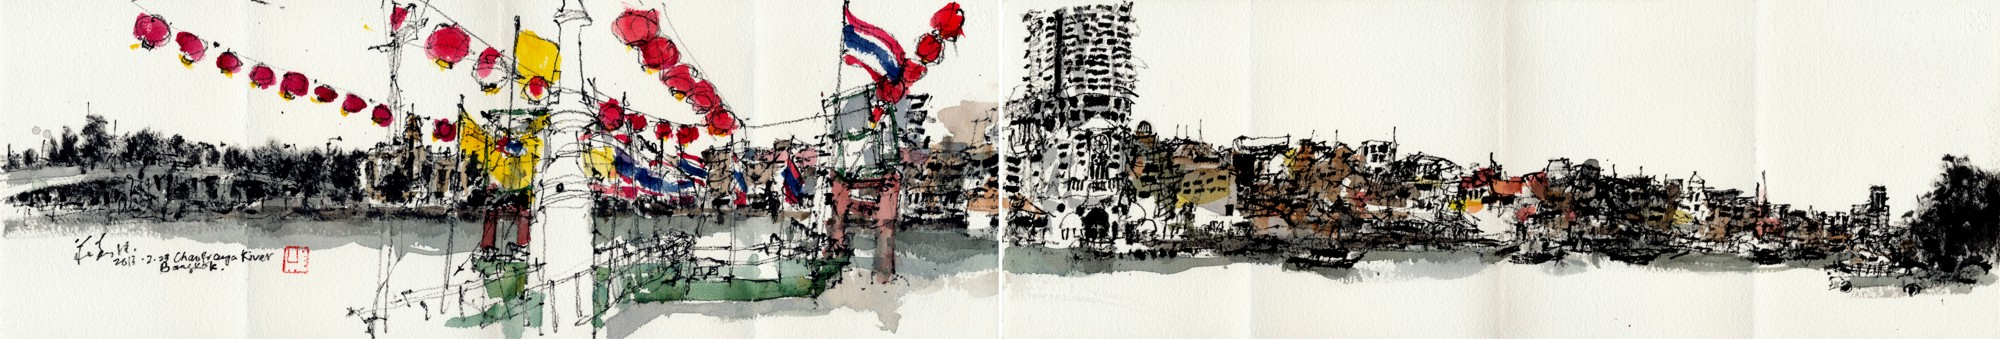 20130223-chaophraya-river-view